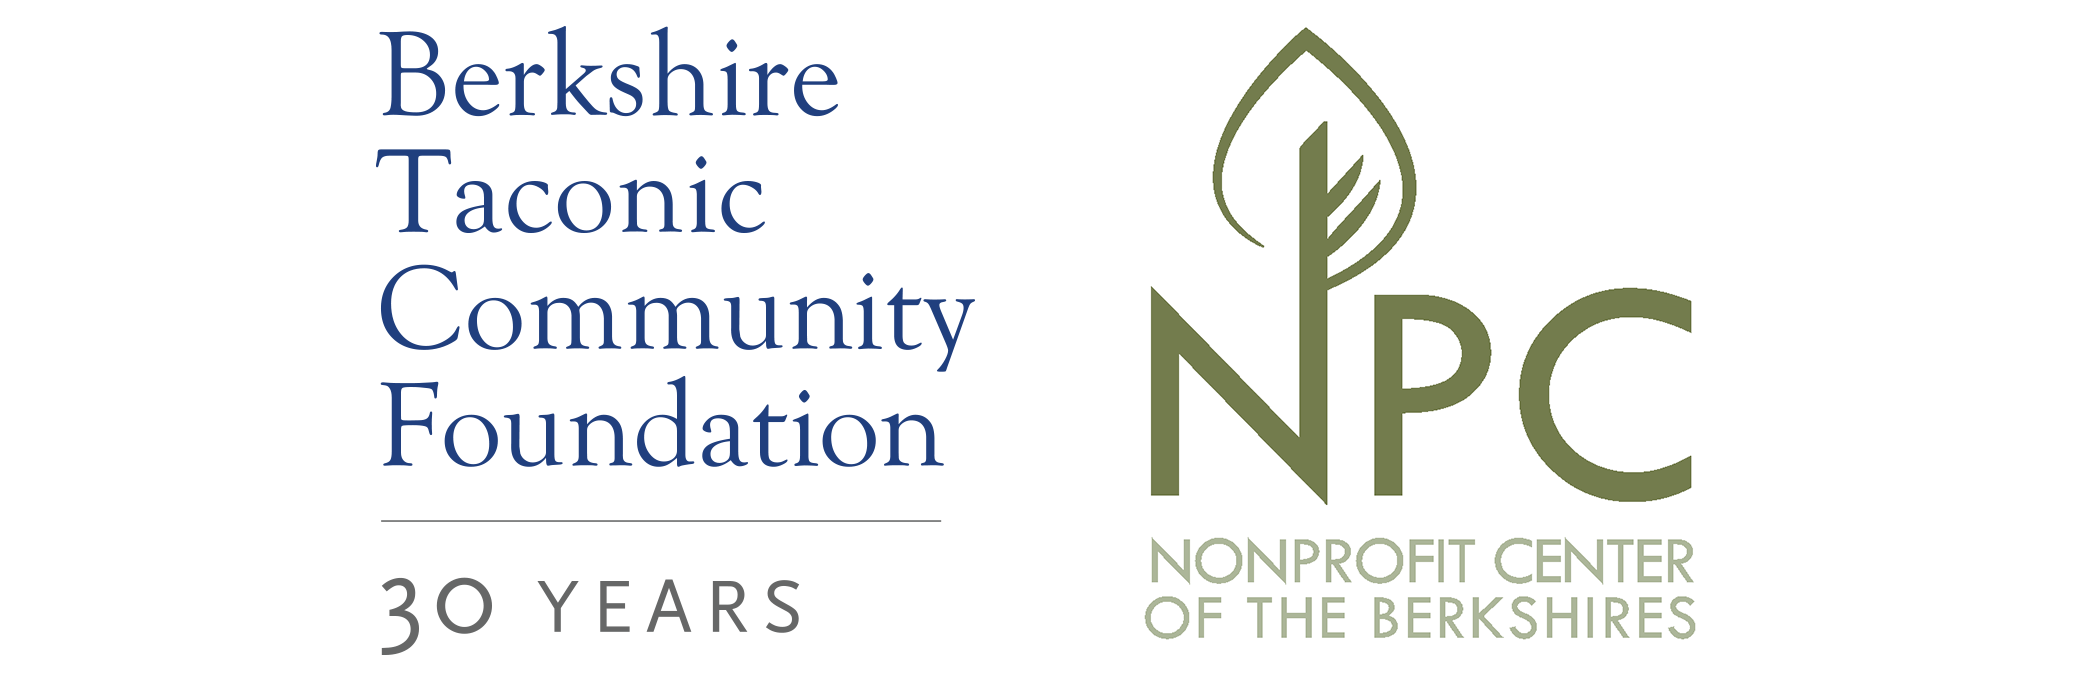 Berkshire Taconic Community Foundation & Nonprofit Center of the Berkshires